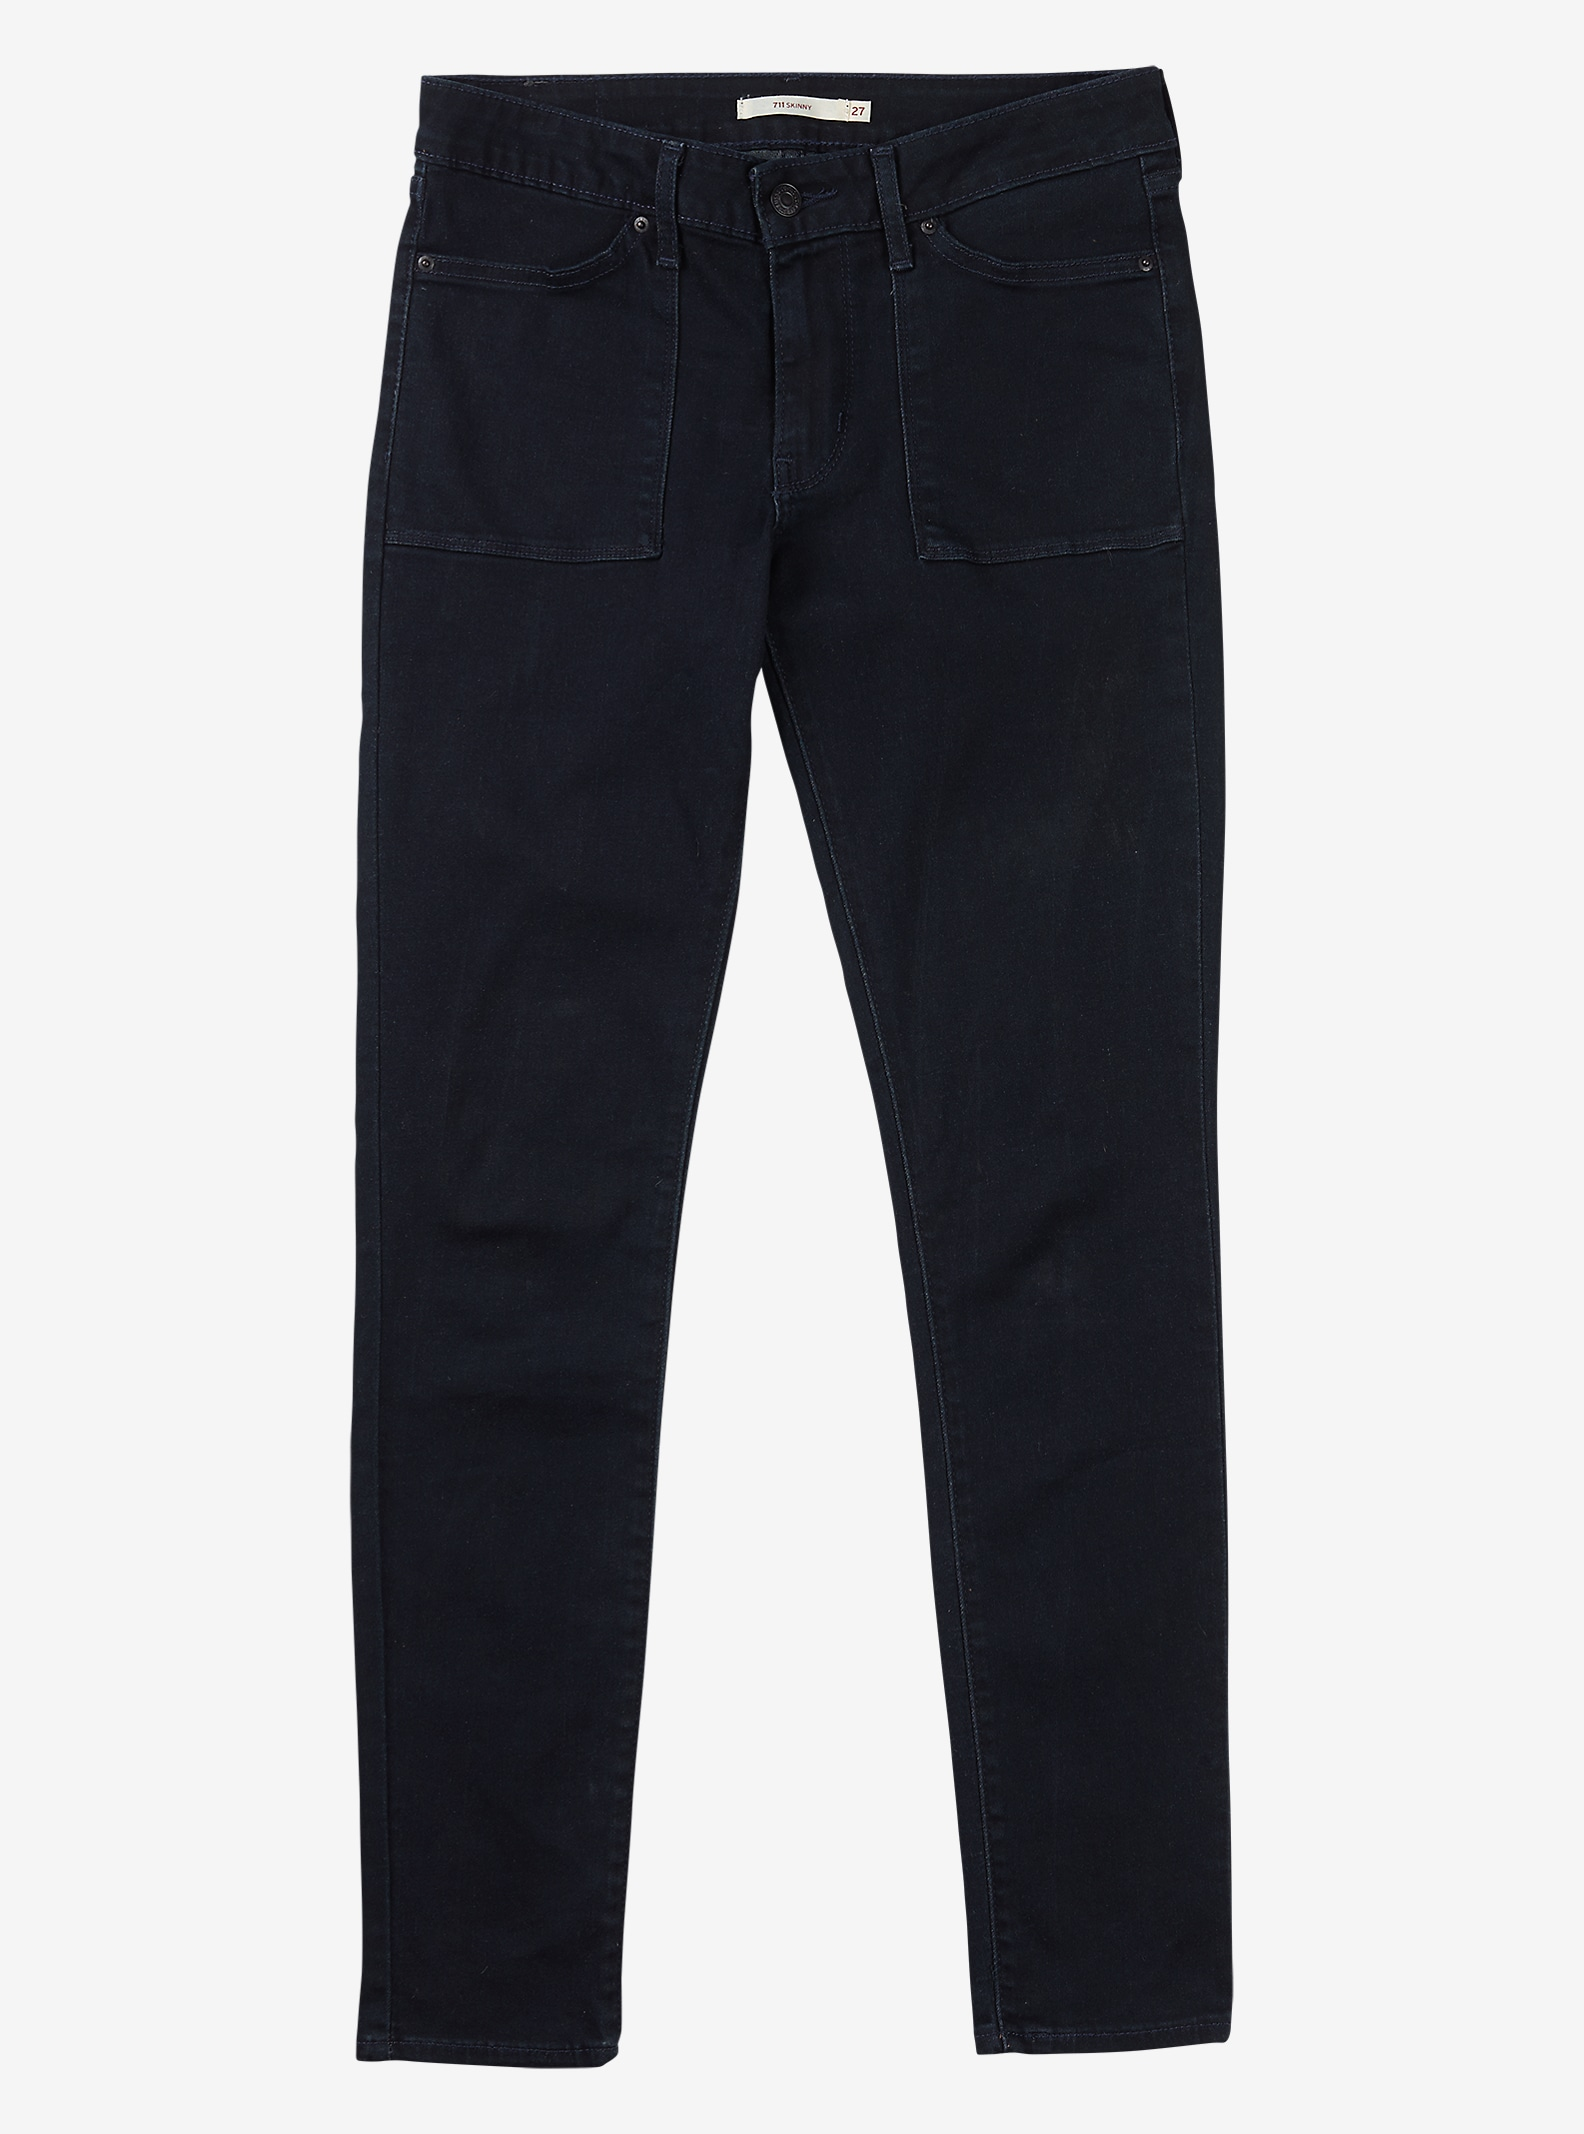 Women's Levi's® 711 Work Wear Skinny Jean shown in Midnight